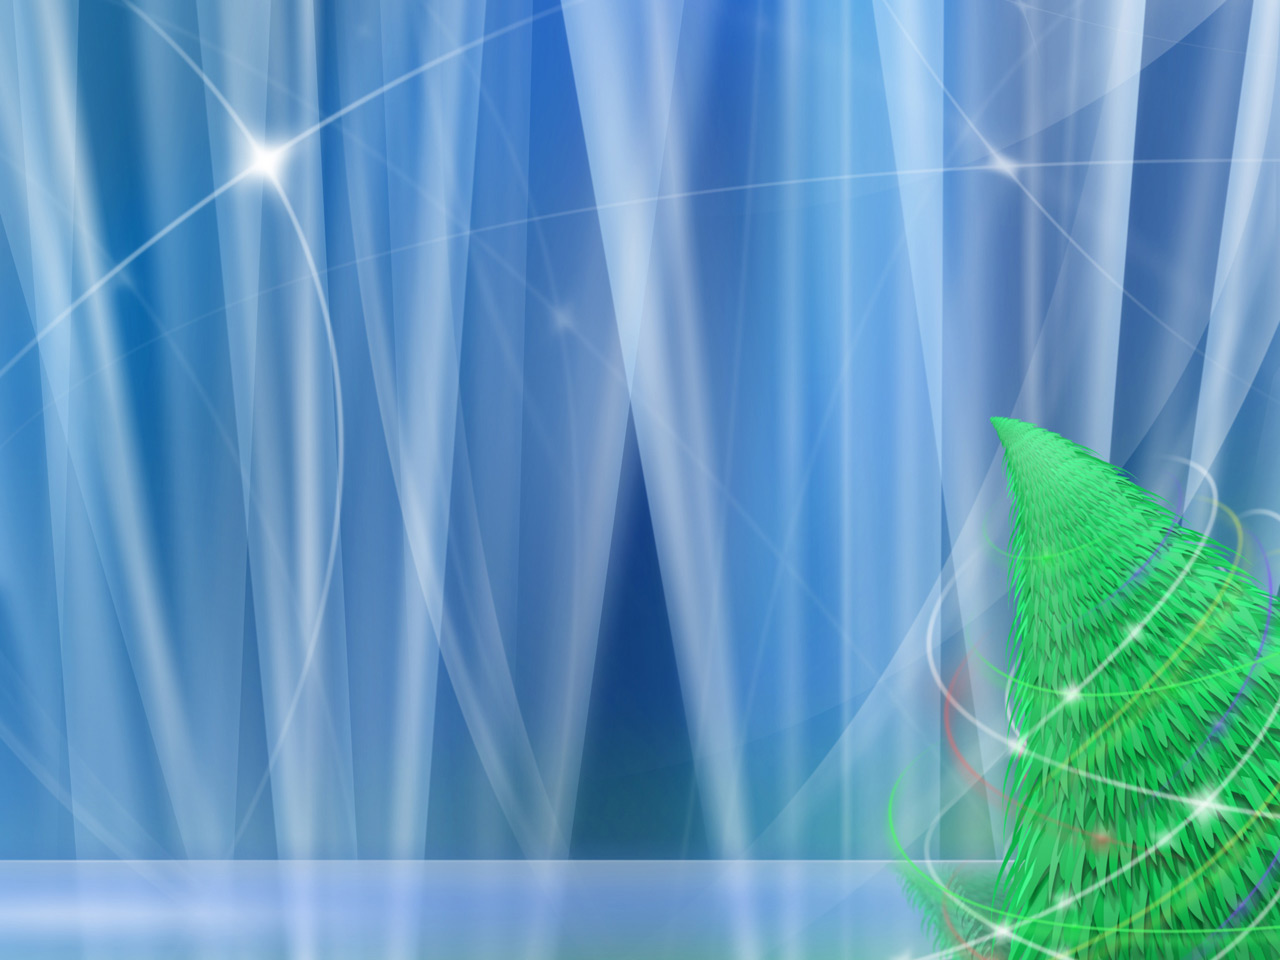 New Year Backgrounds Windows 7 hd Wallpaper High Quality Wallpapers 1280x960